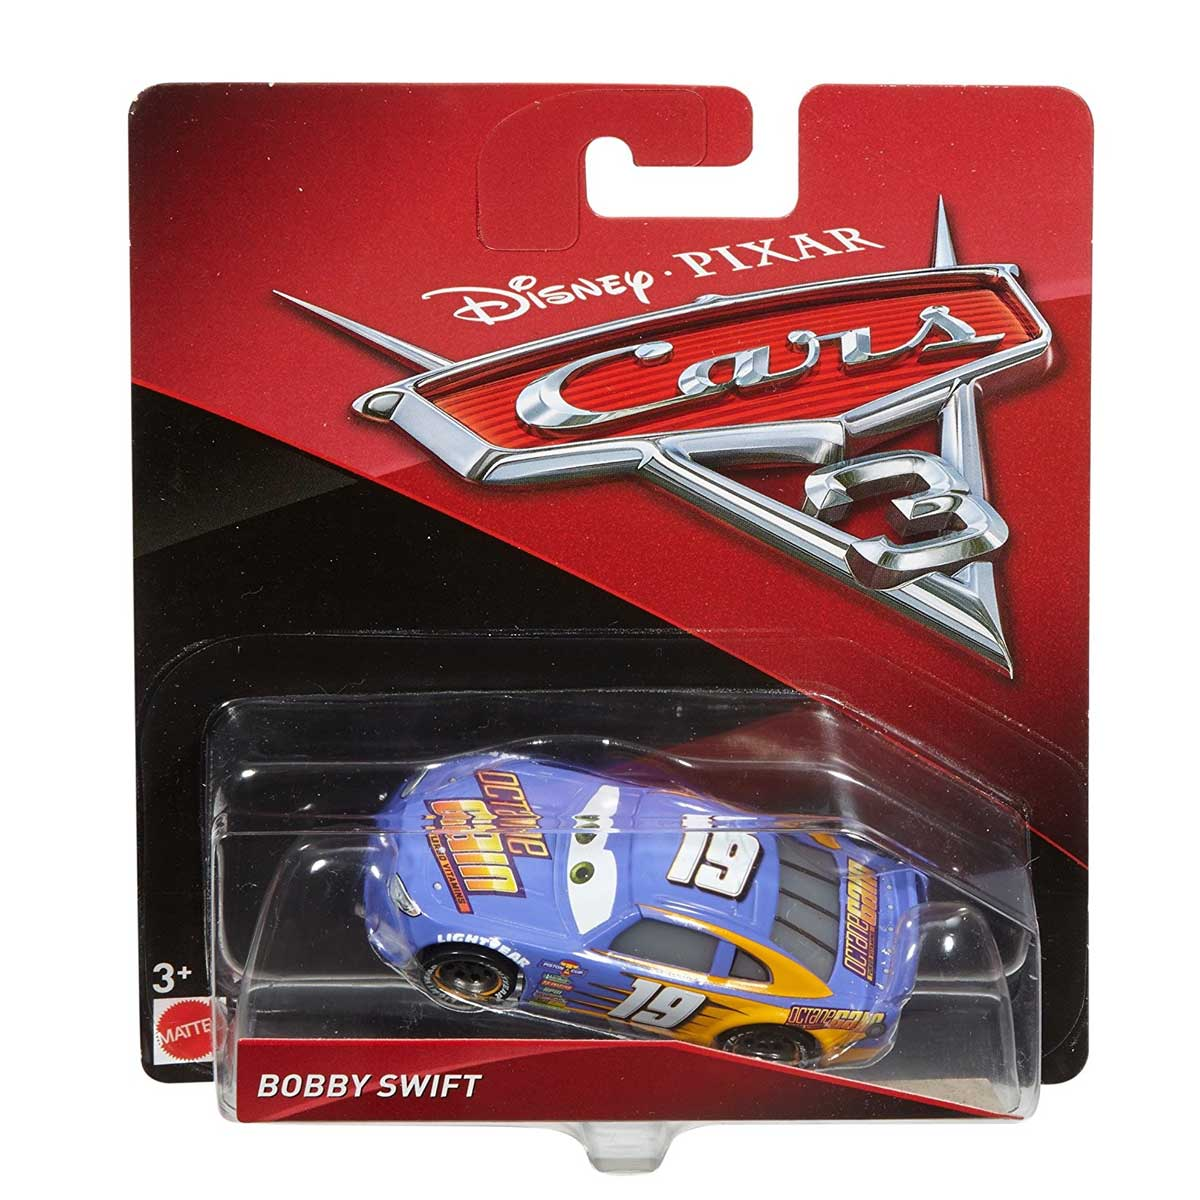 Cars Swift Voiture Voiture Cars 3Bobby Swift Voiture 3Bobby Voiture Cars Cars 3Bobby Swift b7yfvY6g